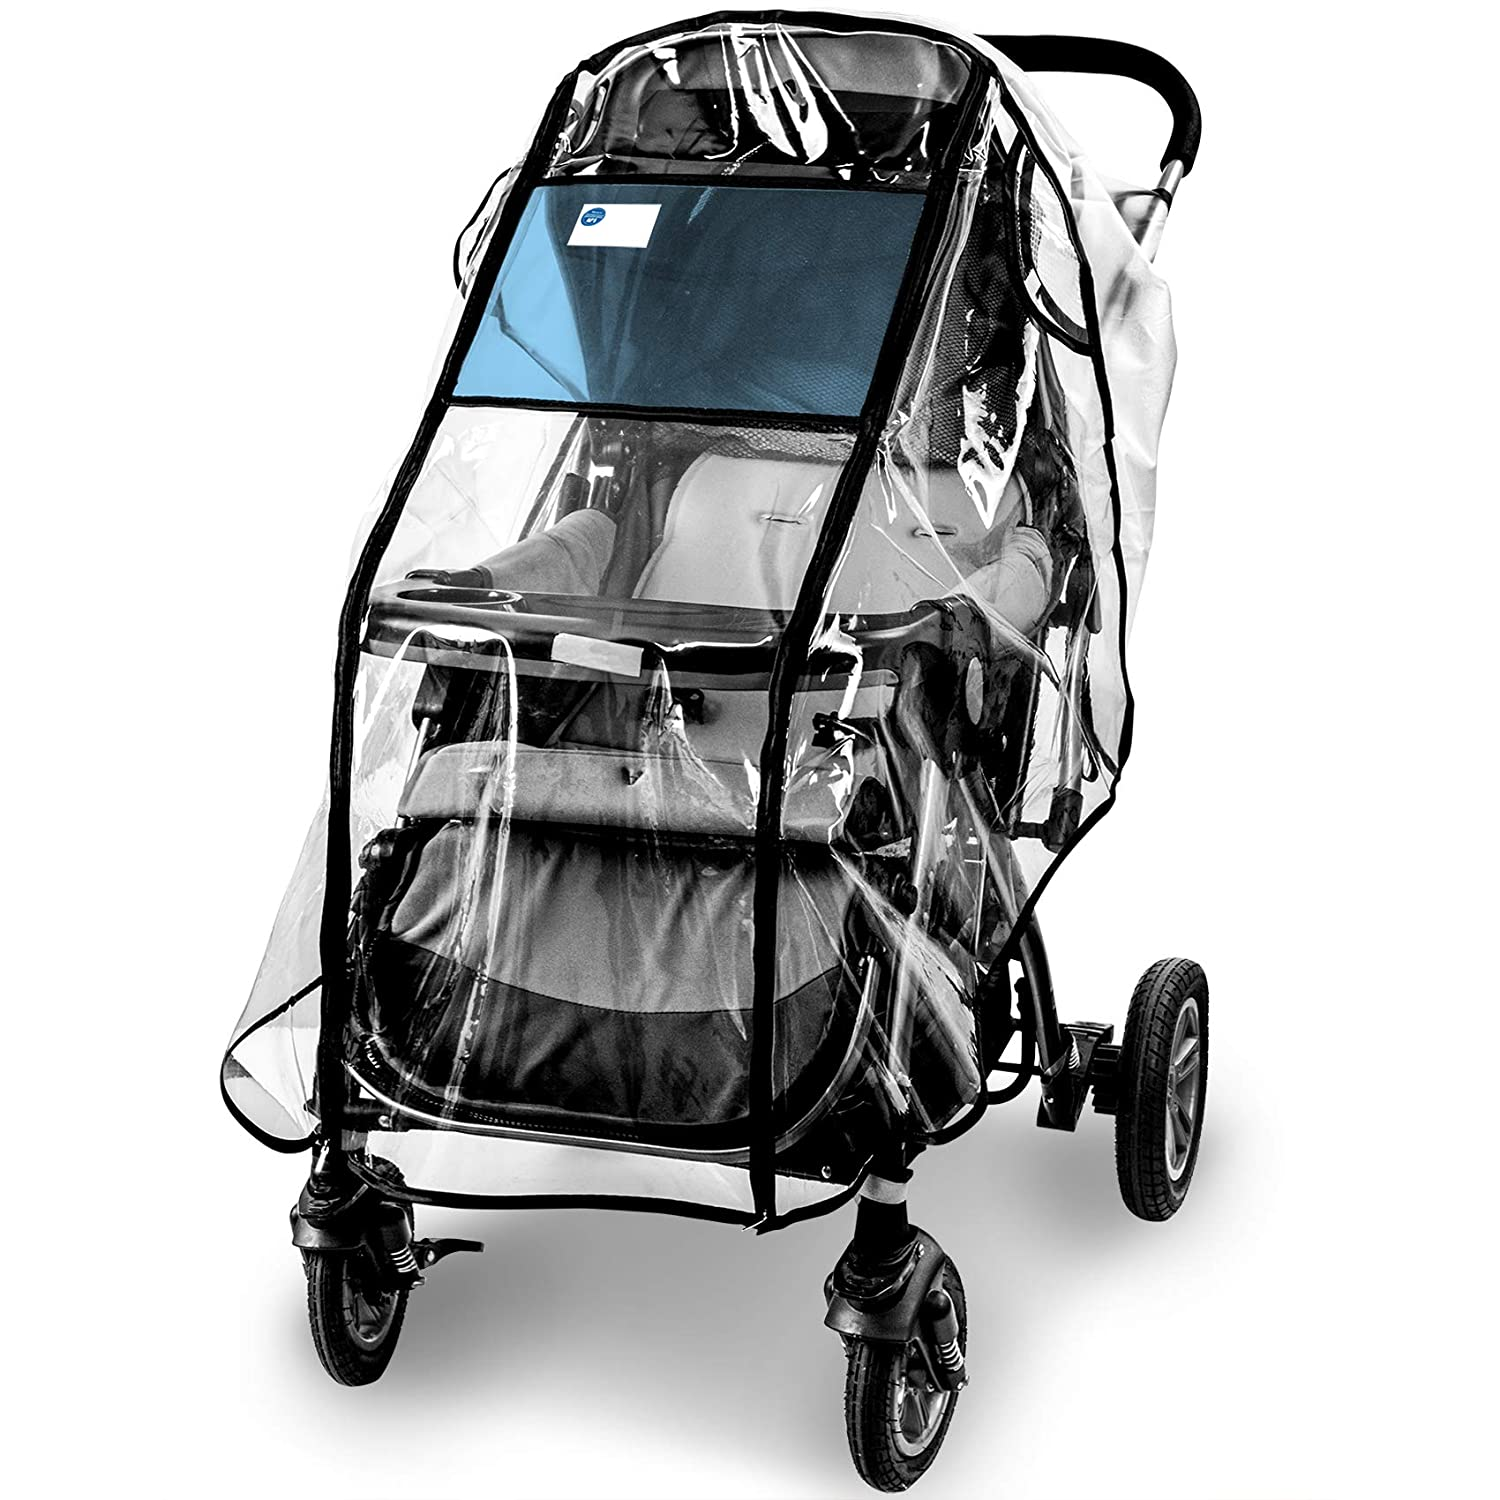 Fresno Mall Stroller Same day shipping Rain Cover Universal Win Waterproof Accessory